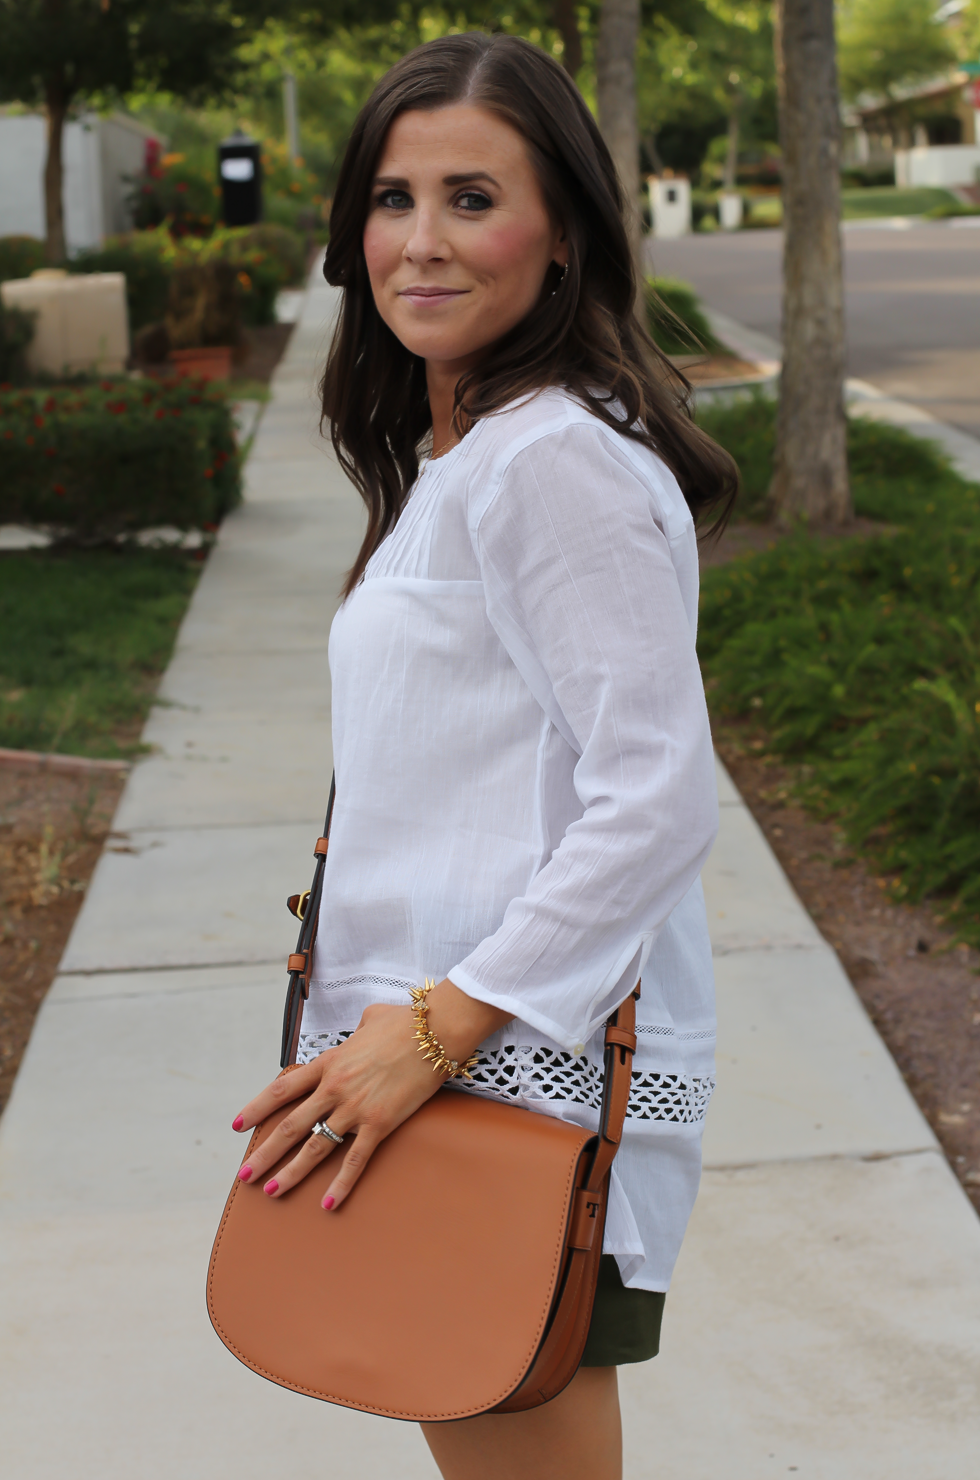 Gauze White Lace Tunic, Green Linen Shorts, Brown Suede Espadrilles, Brown Leather Crossbody Bag, Old Navy, J.Crew, Chloe, Tory Burch 19